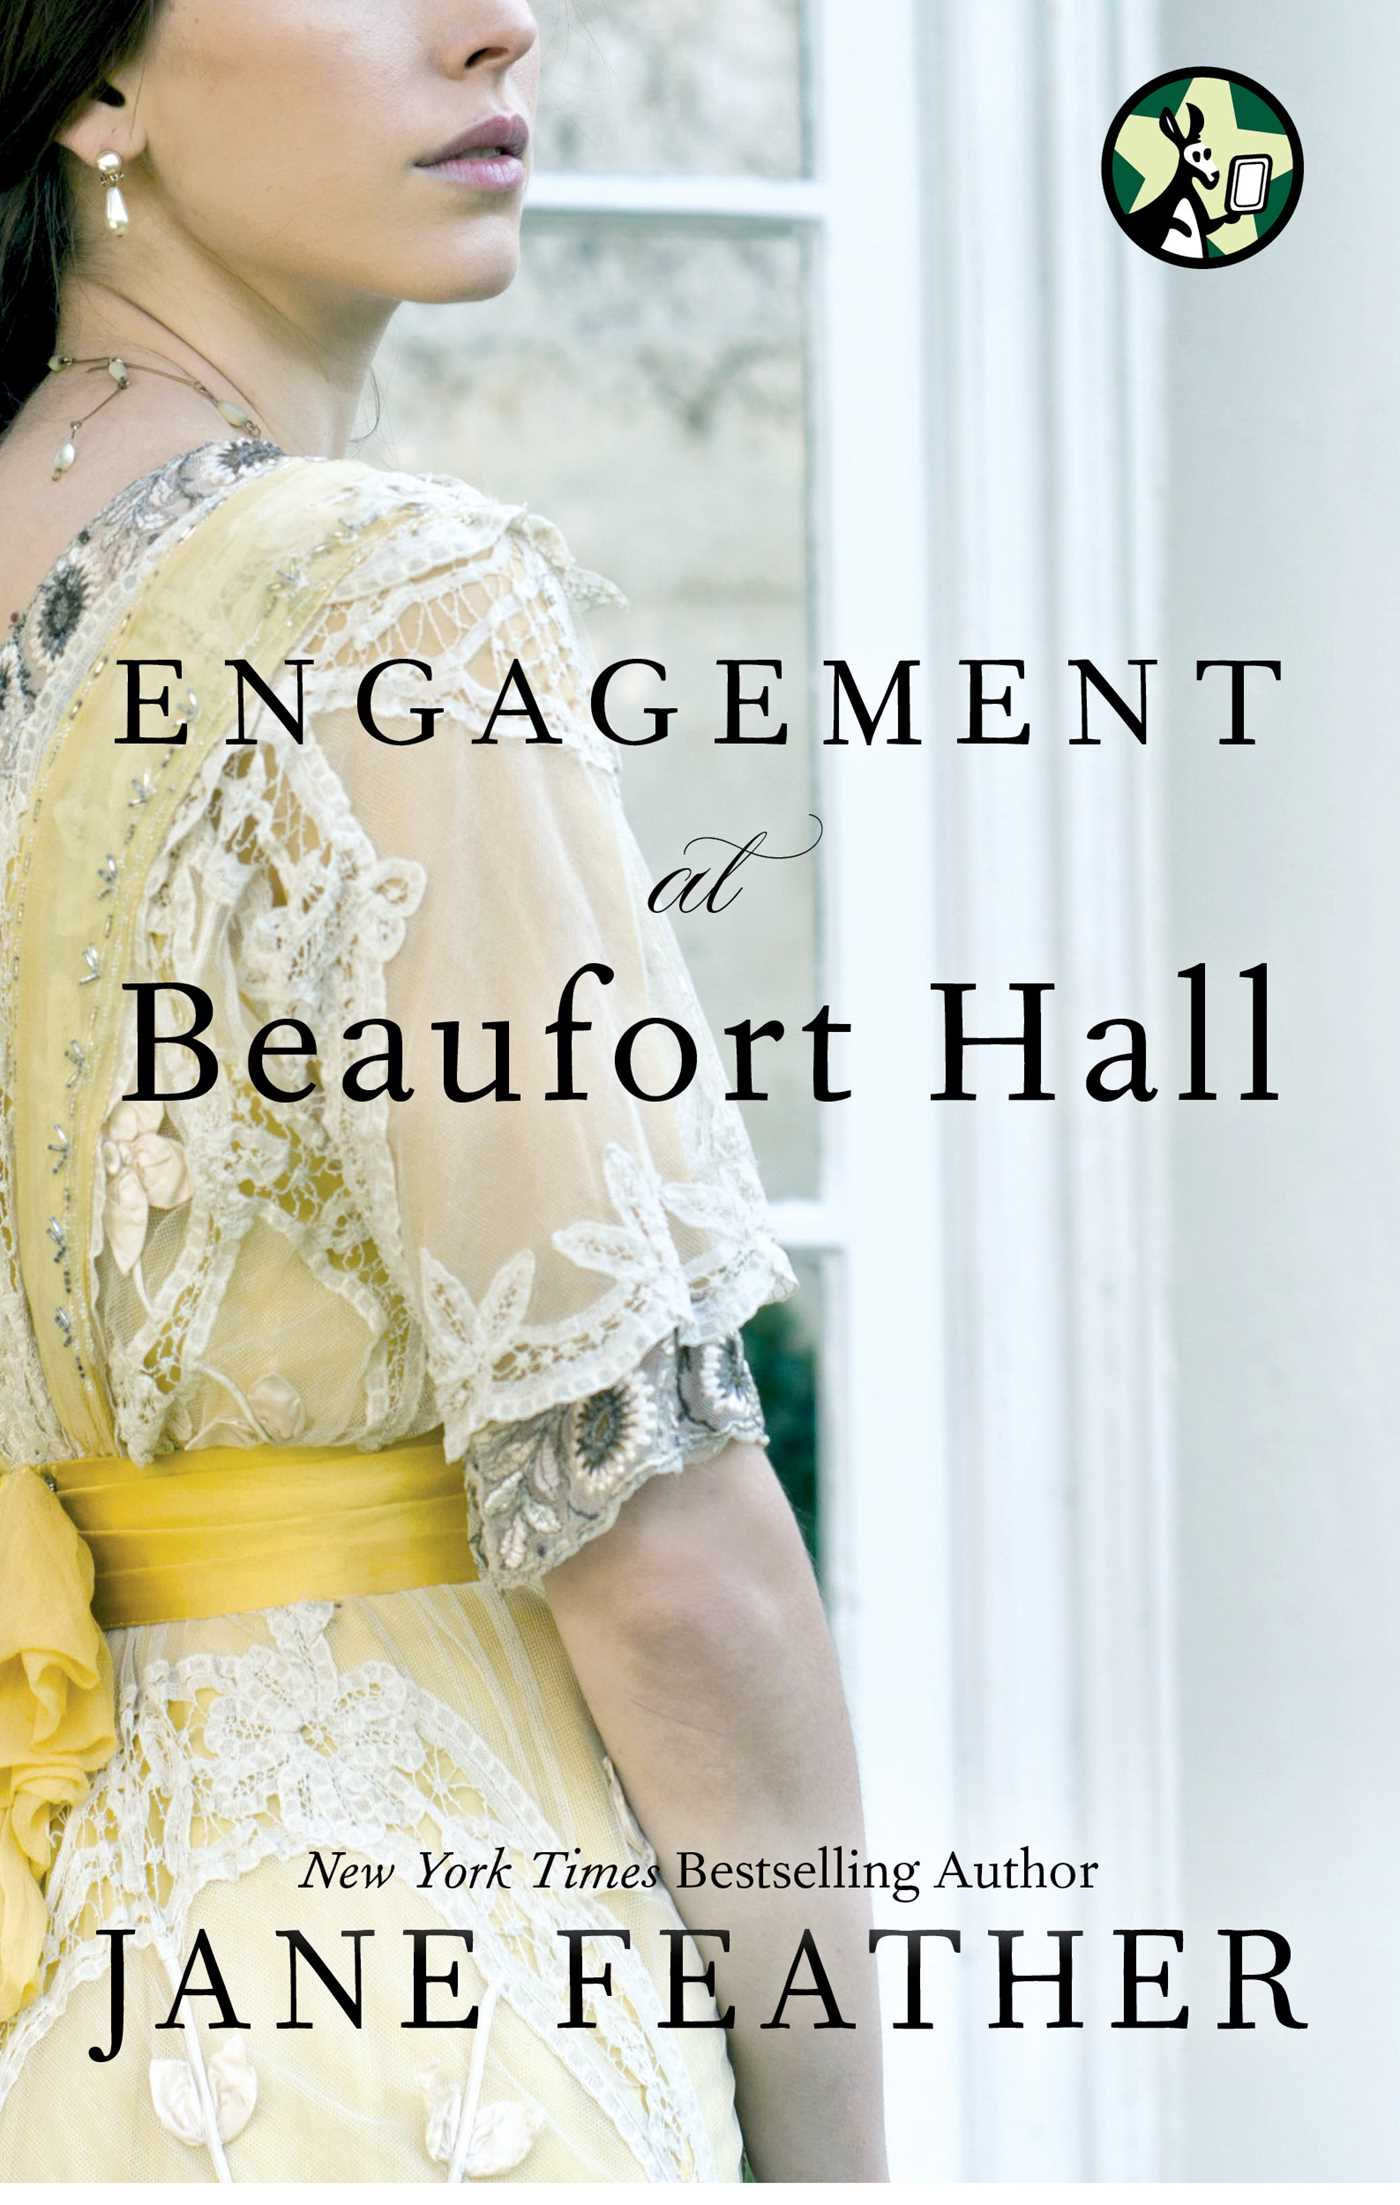 Engagement-at-beaufort-hall-9781476703718_hr